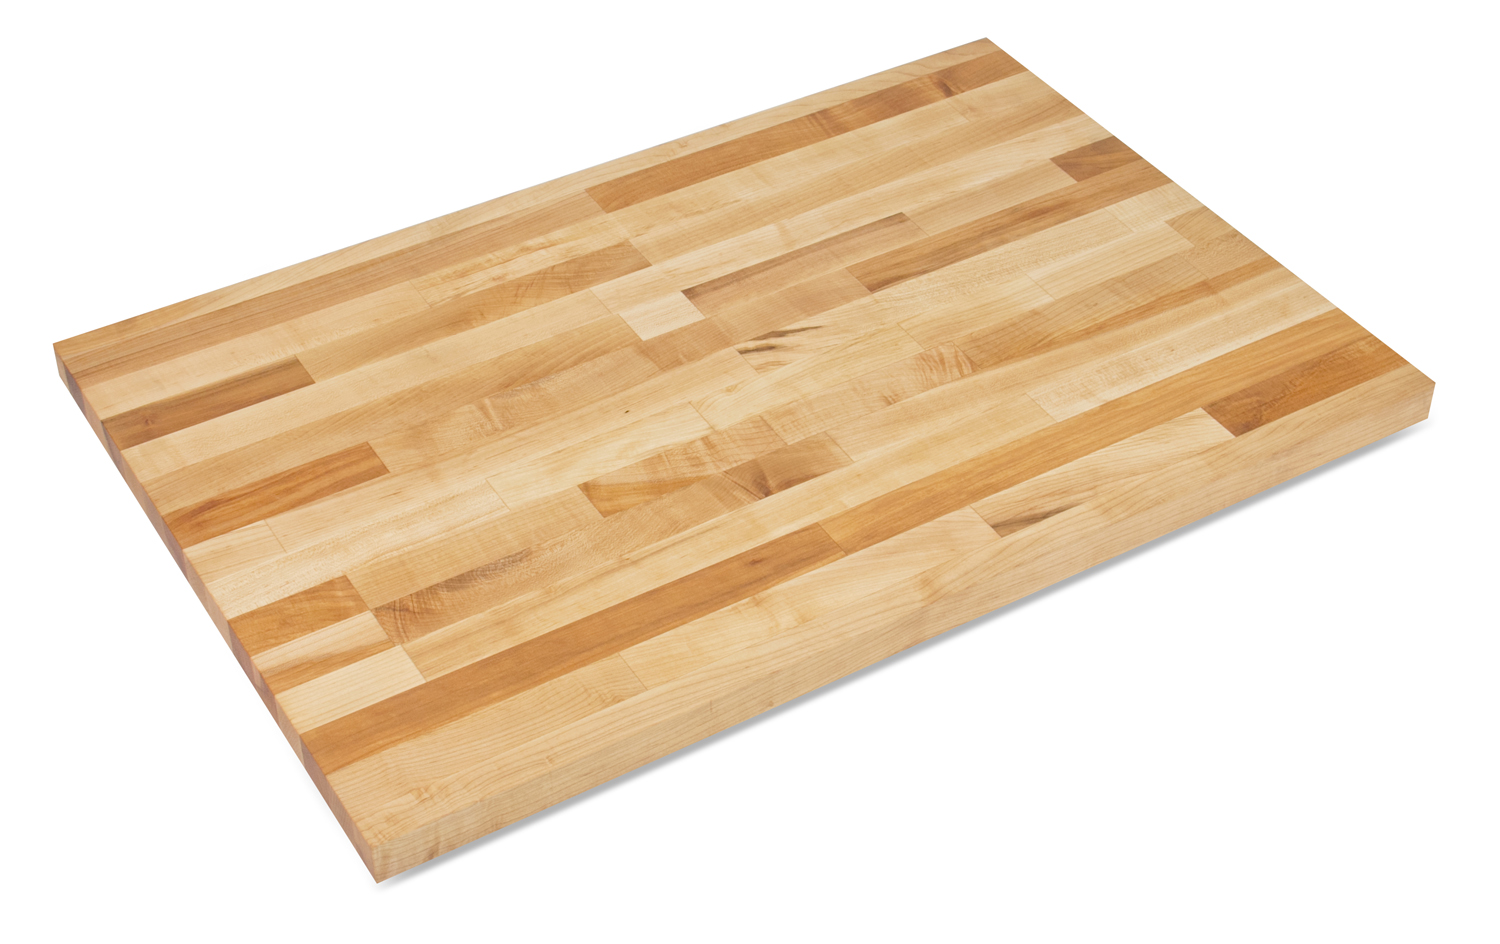 Butcher Block Countertops Price : 75 inch thick maple commercial countertops 24 inches wide